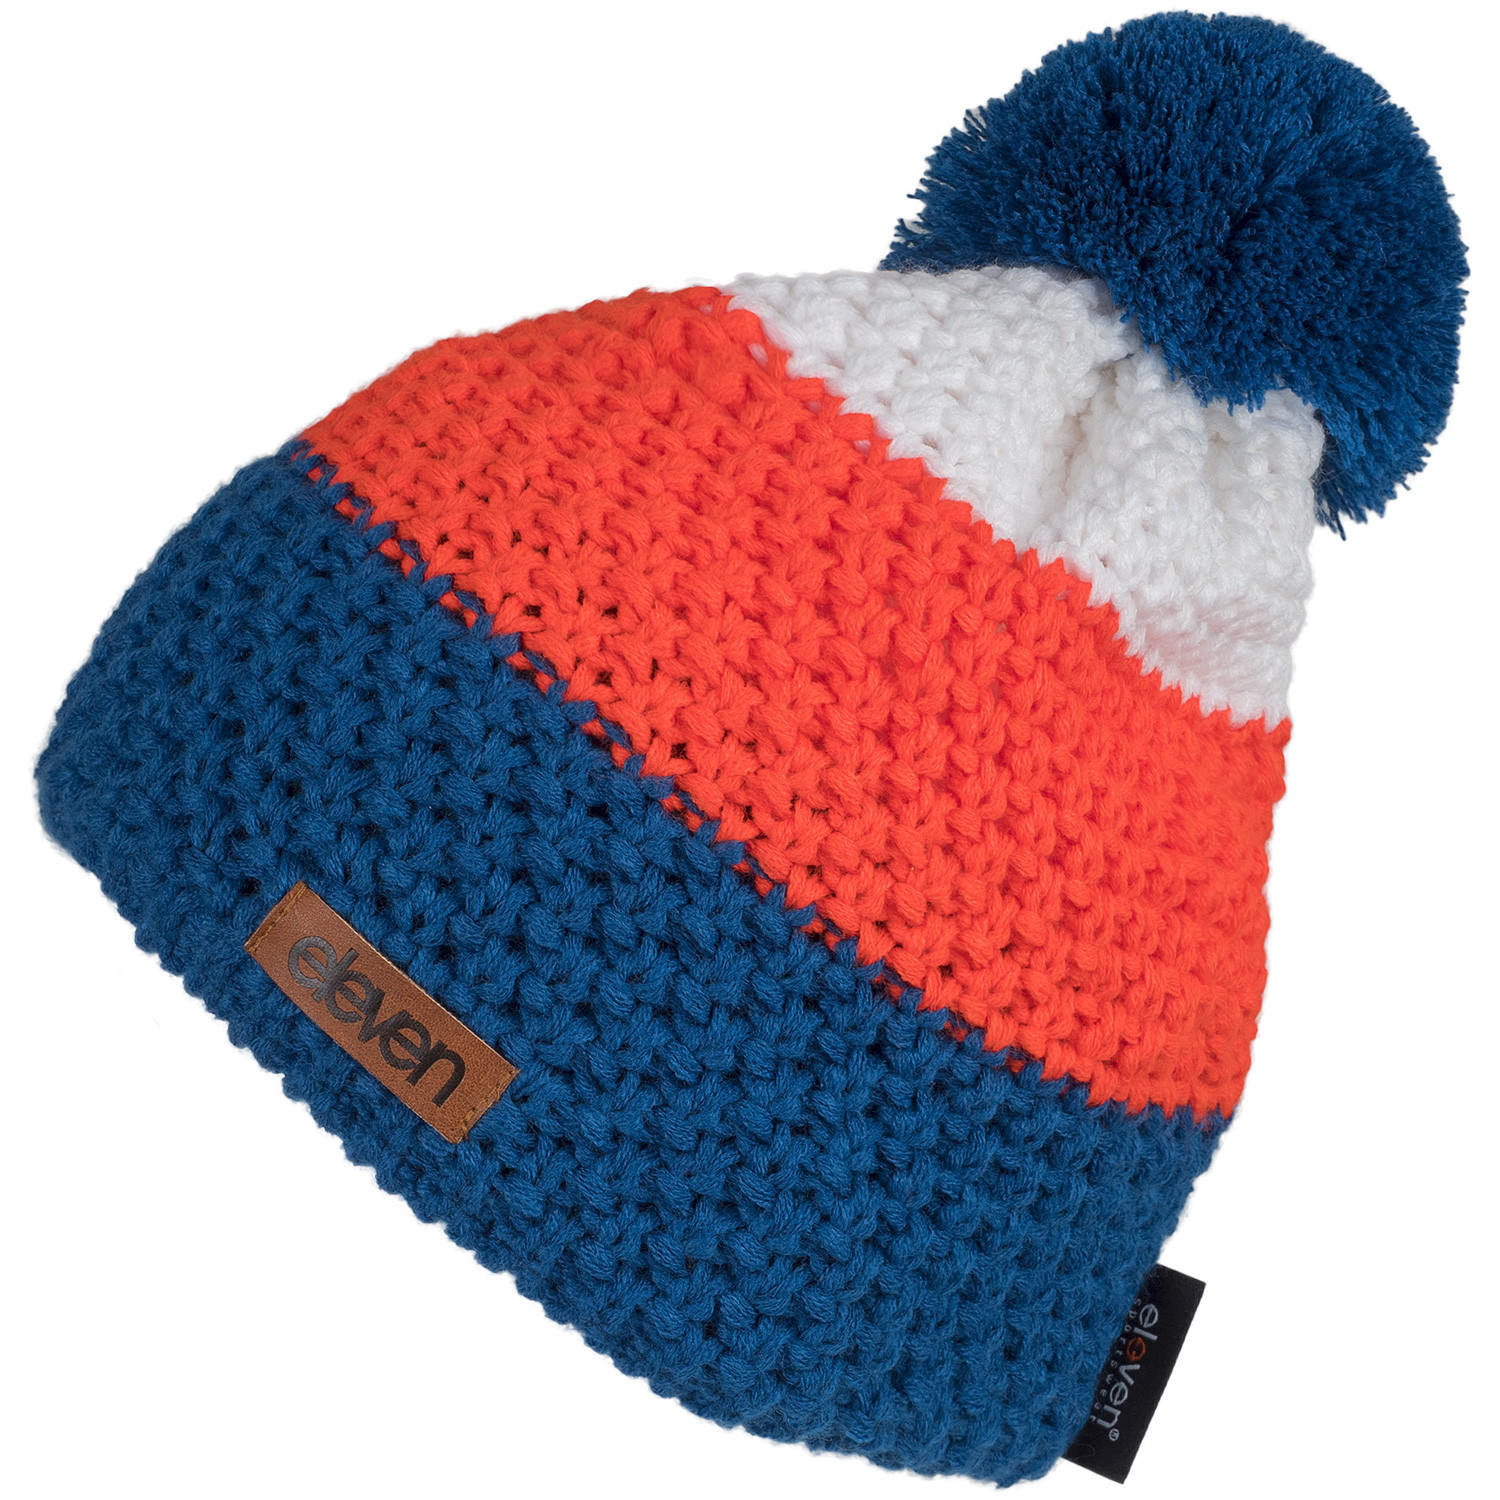 Knitted beanie pom blue orange c8b3559cc92